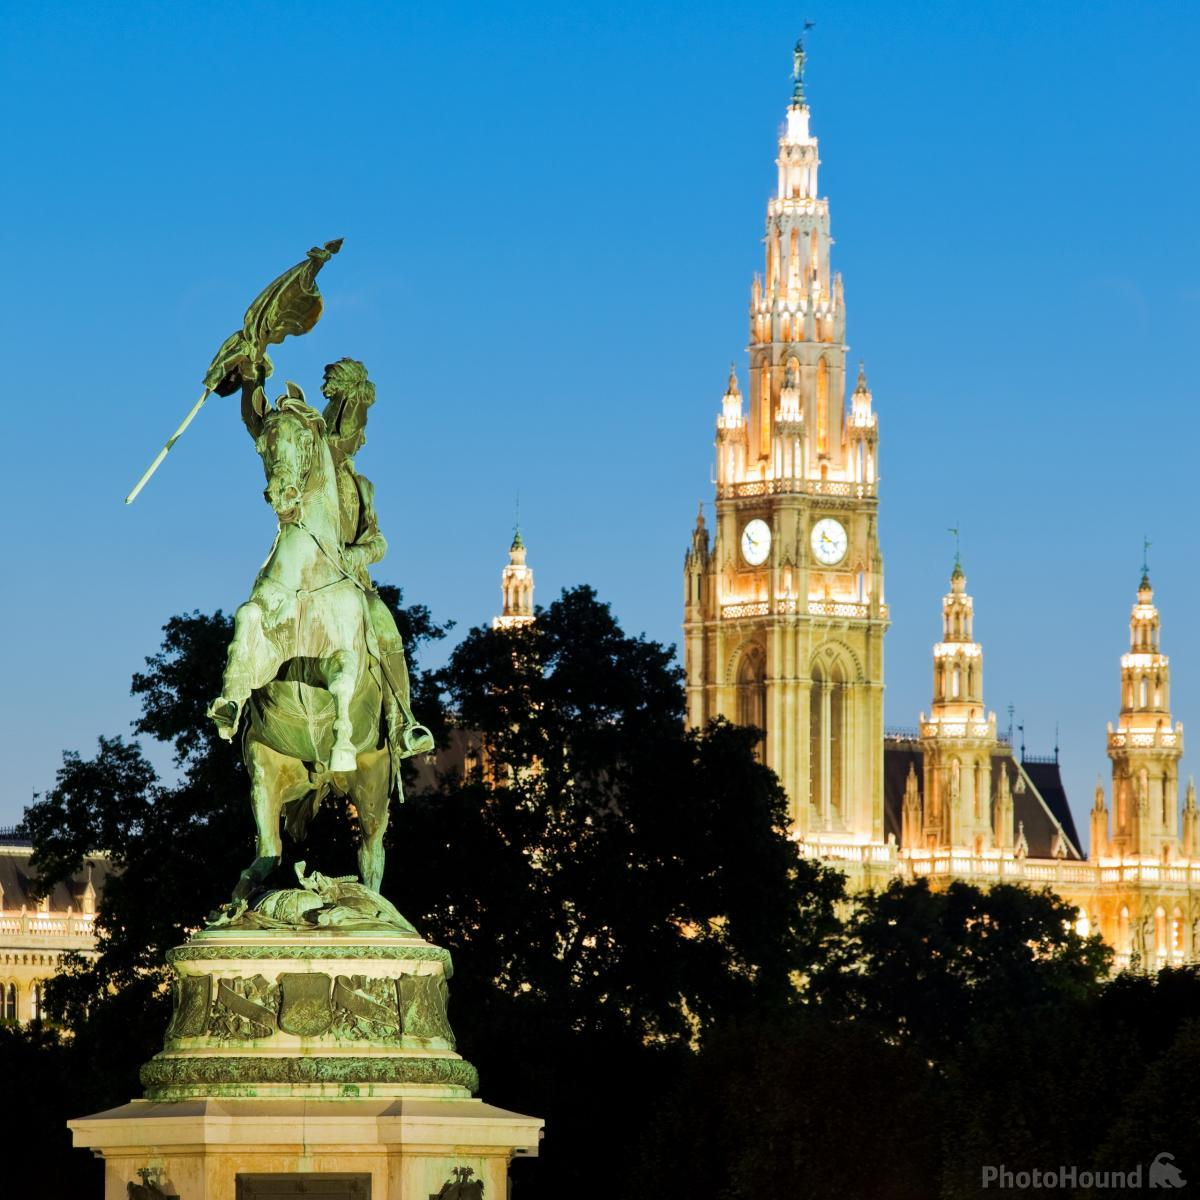 Archduke Karl Statue & City Hall